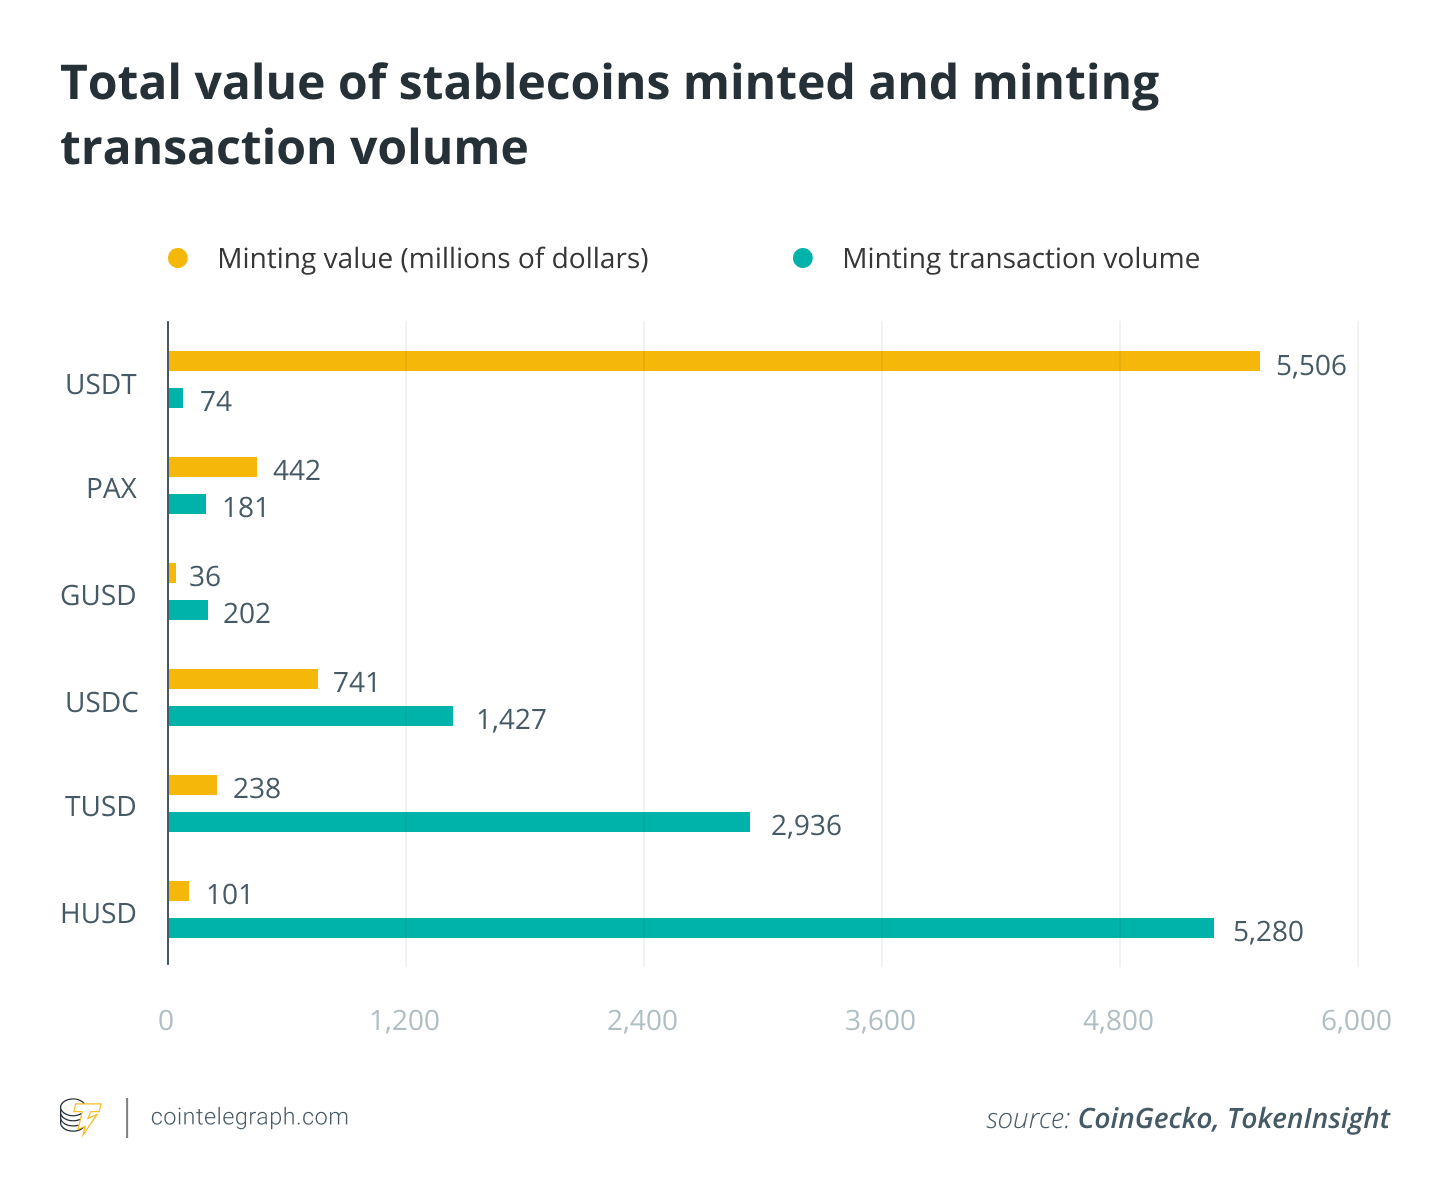 Total value of stablecoins minted and minting transaction volume